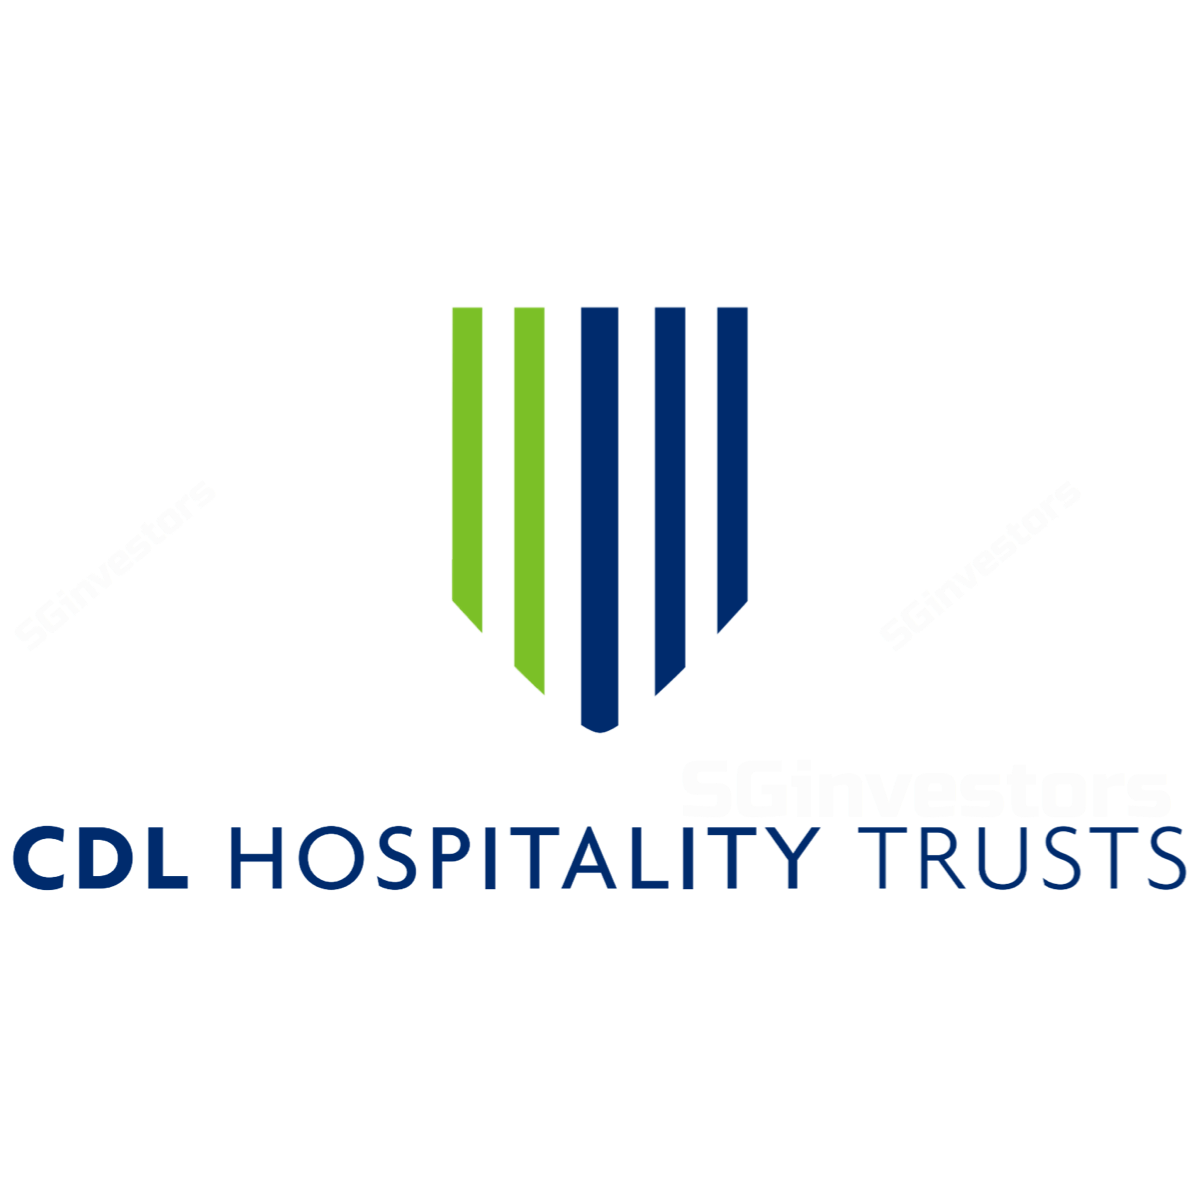 CDL Hospitality Trust - CIMB Research 2018-01-02: Bellwether Of The Hospitality Sector